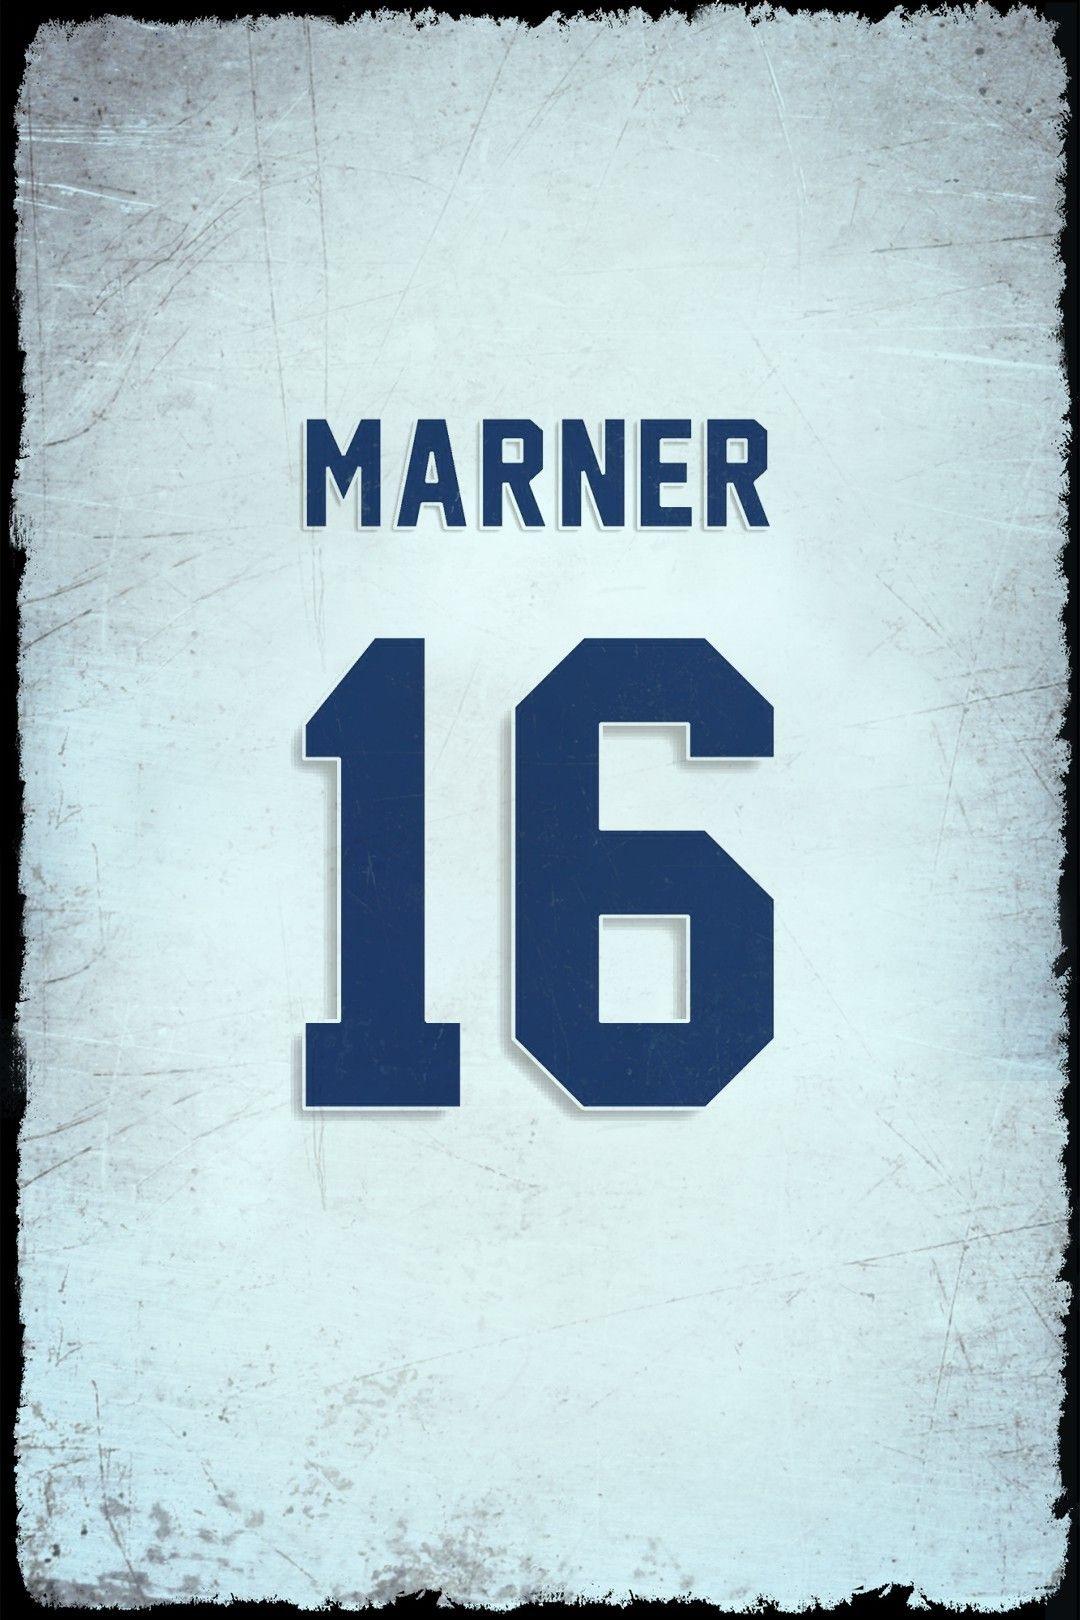 Mitch Marner Toronto Maple Leafs Hockey Phone Wallpaper Background